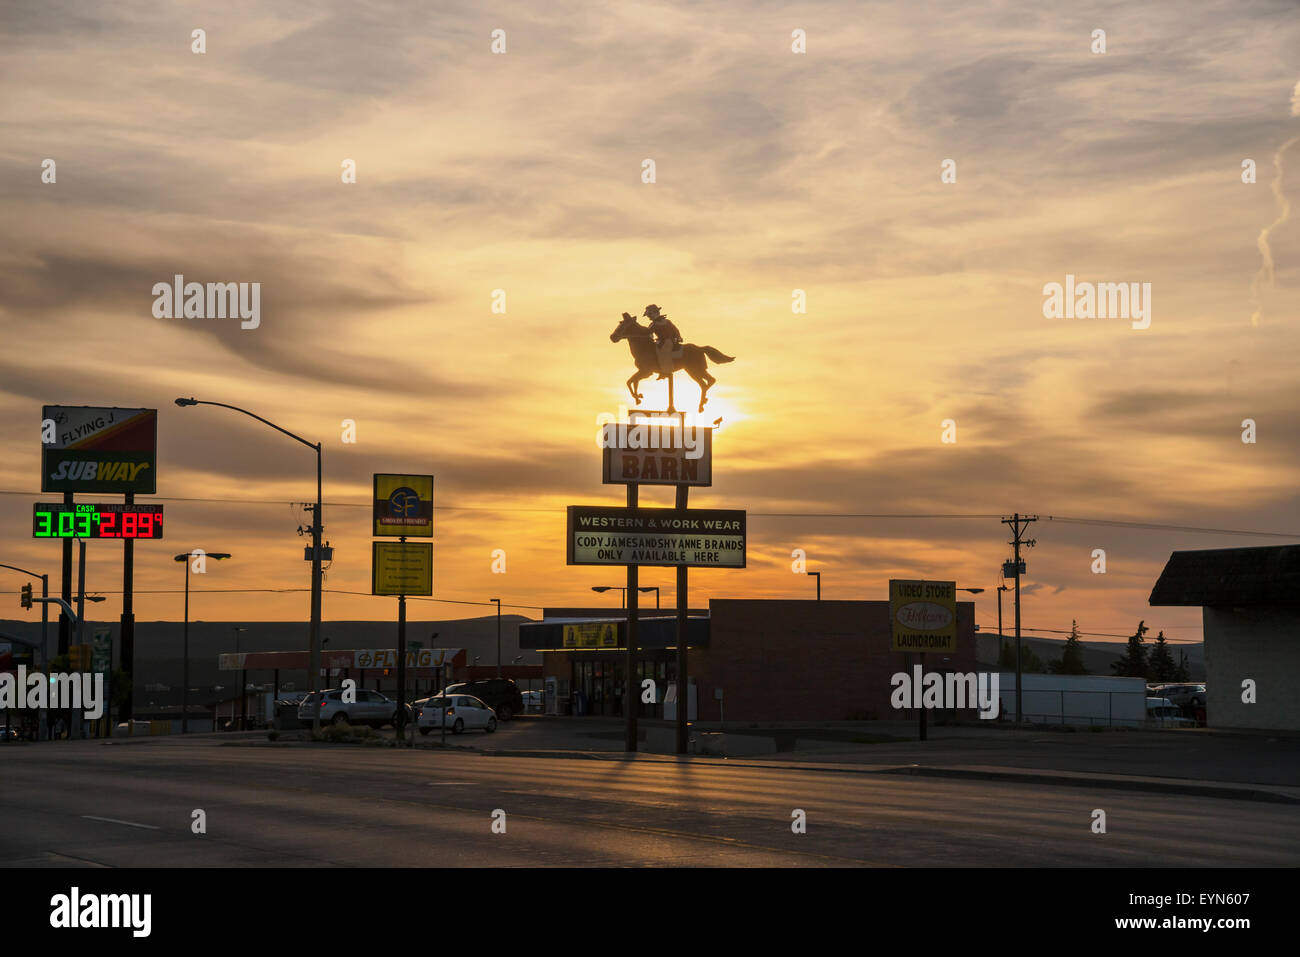 Evanston symbol in the rays of the setting sun, Wyoming, United States, USA - Stock Image